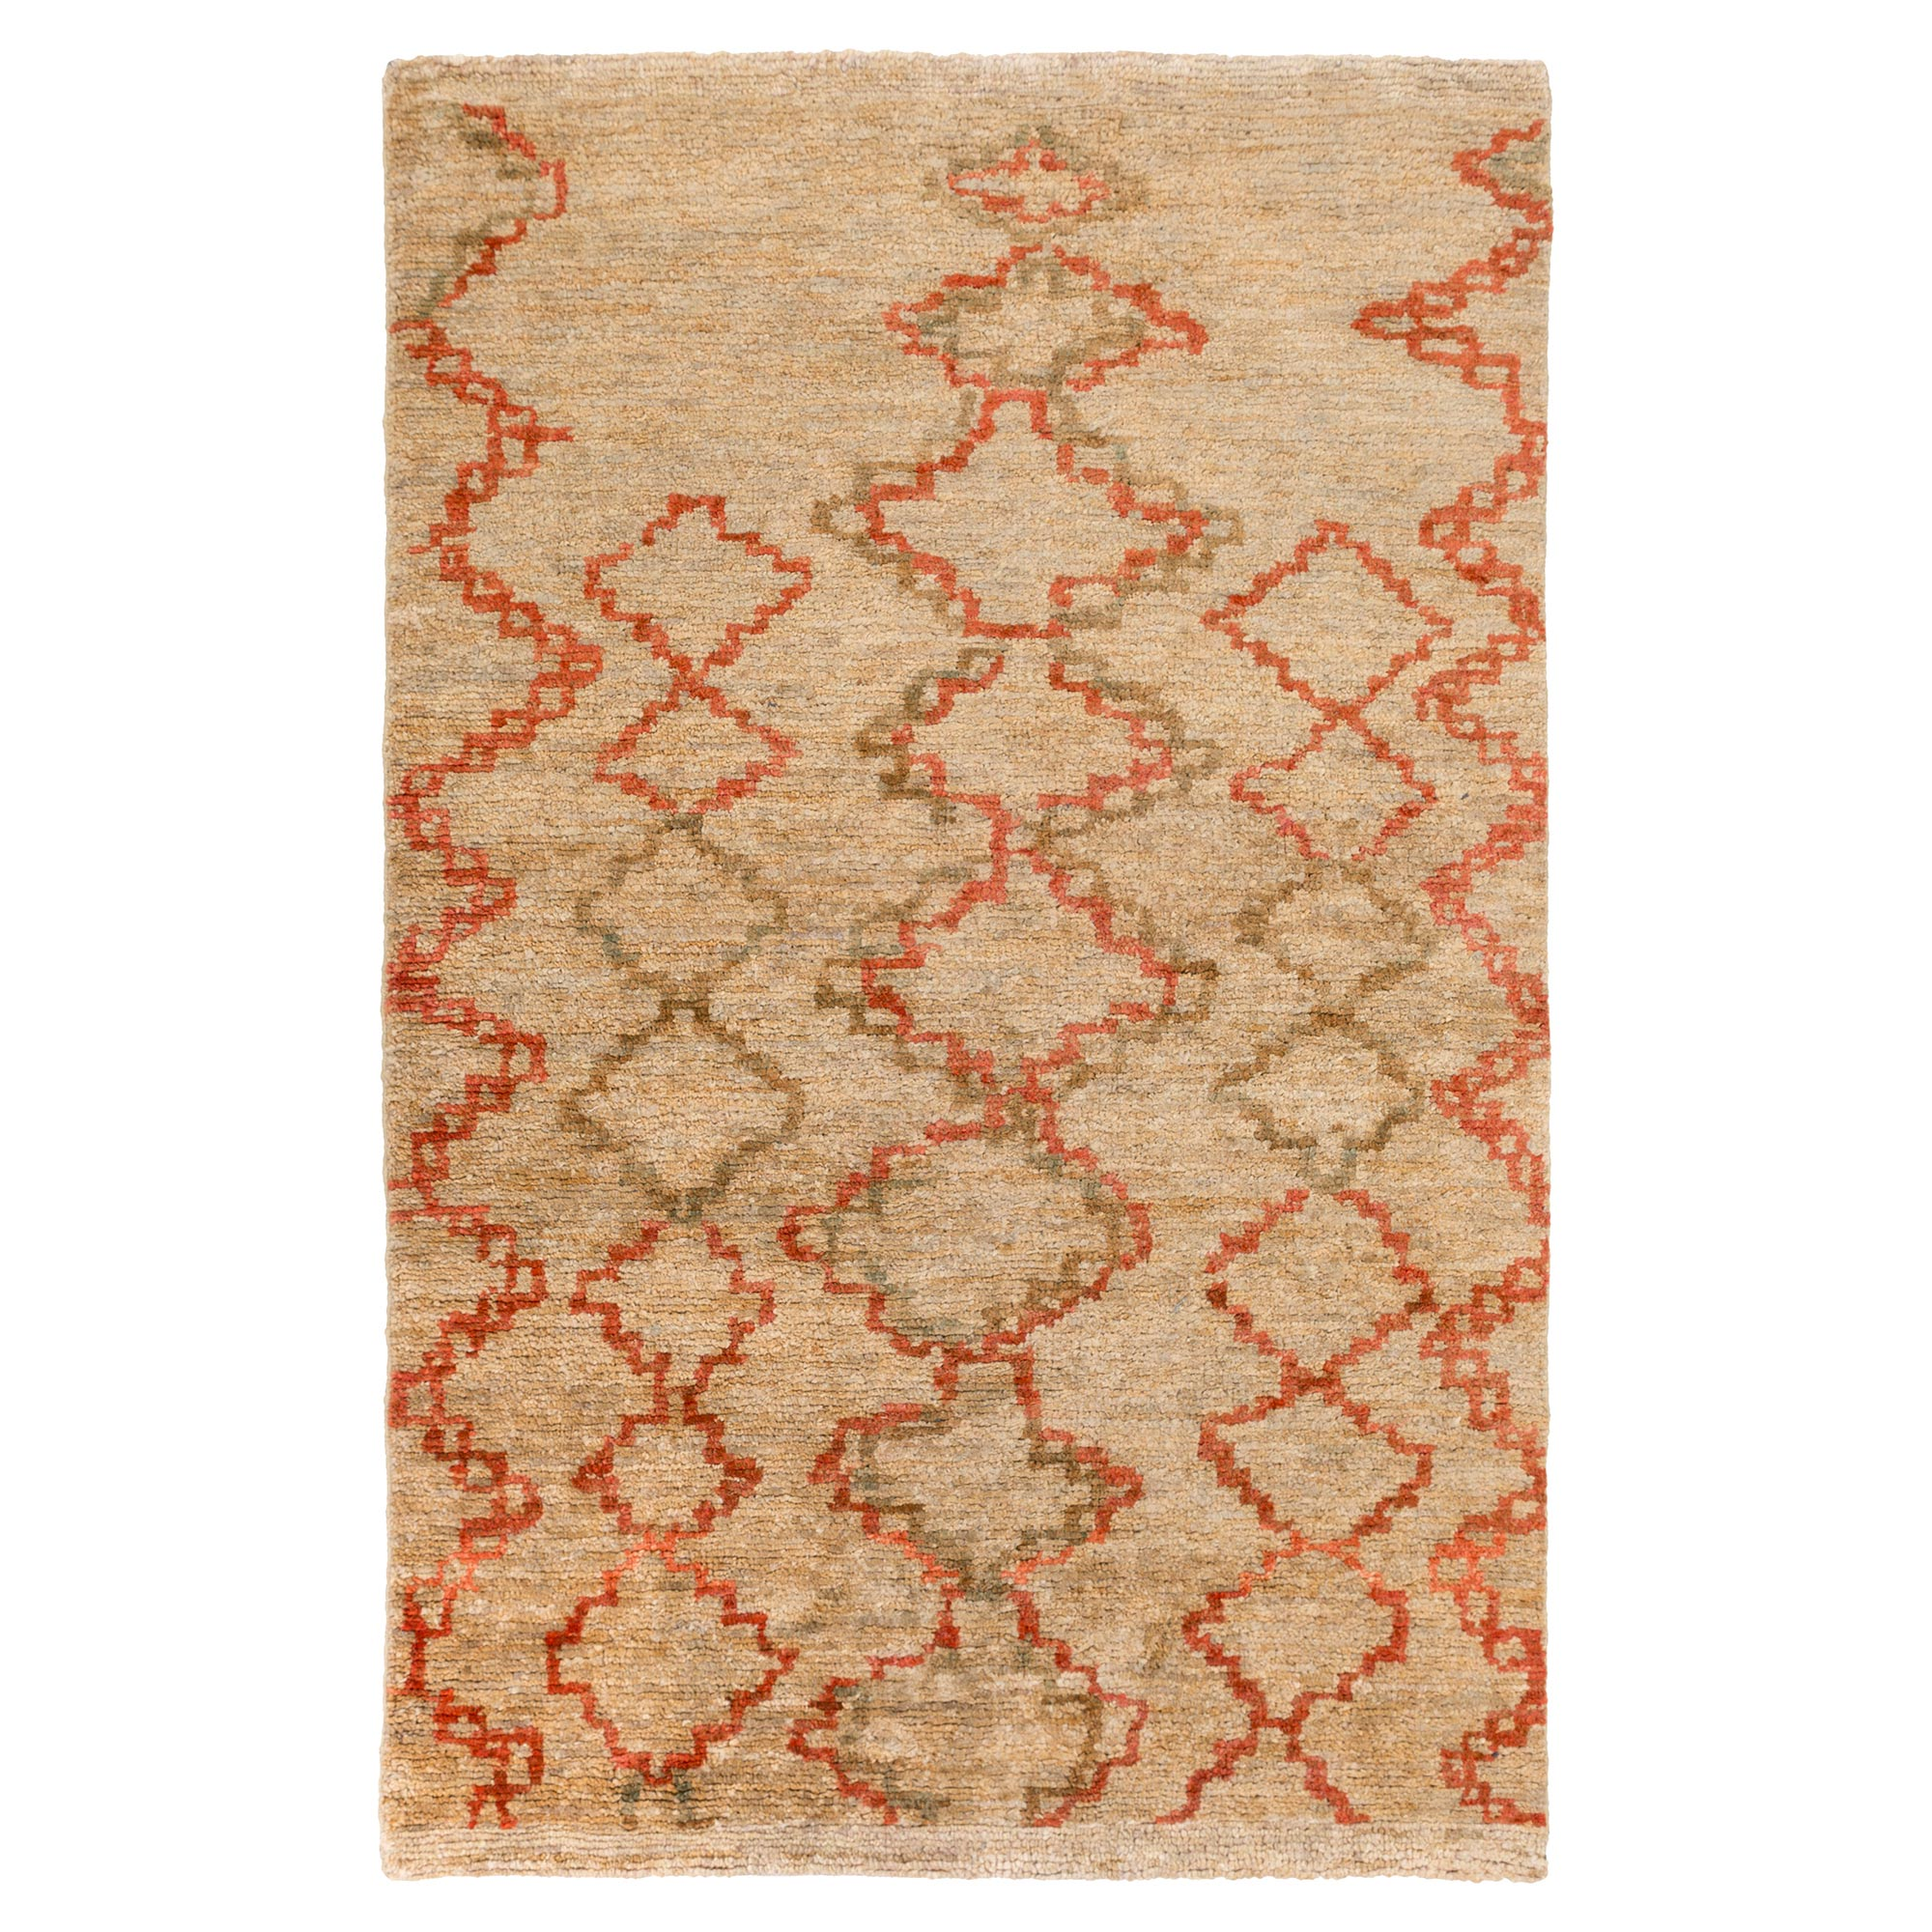 Nalia Bazaar Burnt Orange Beige Jute Rug - 6x9